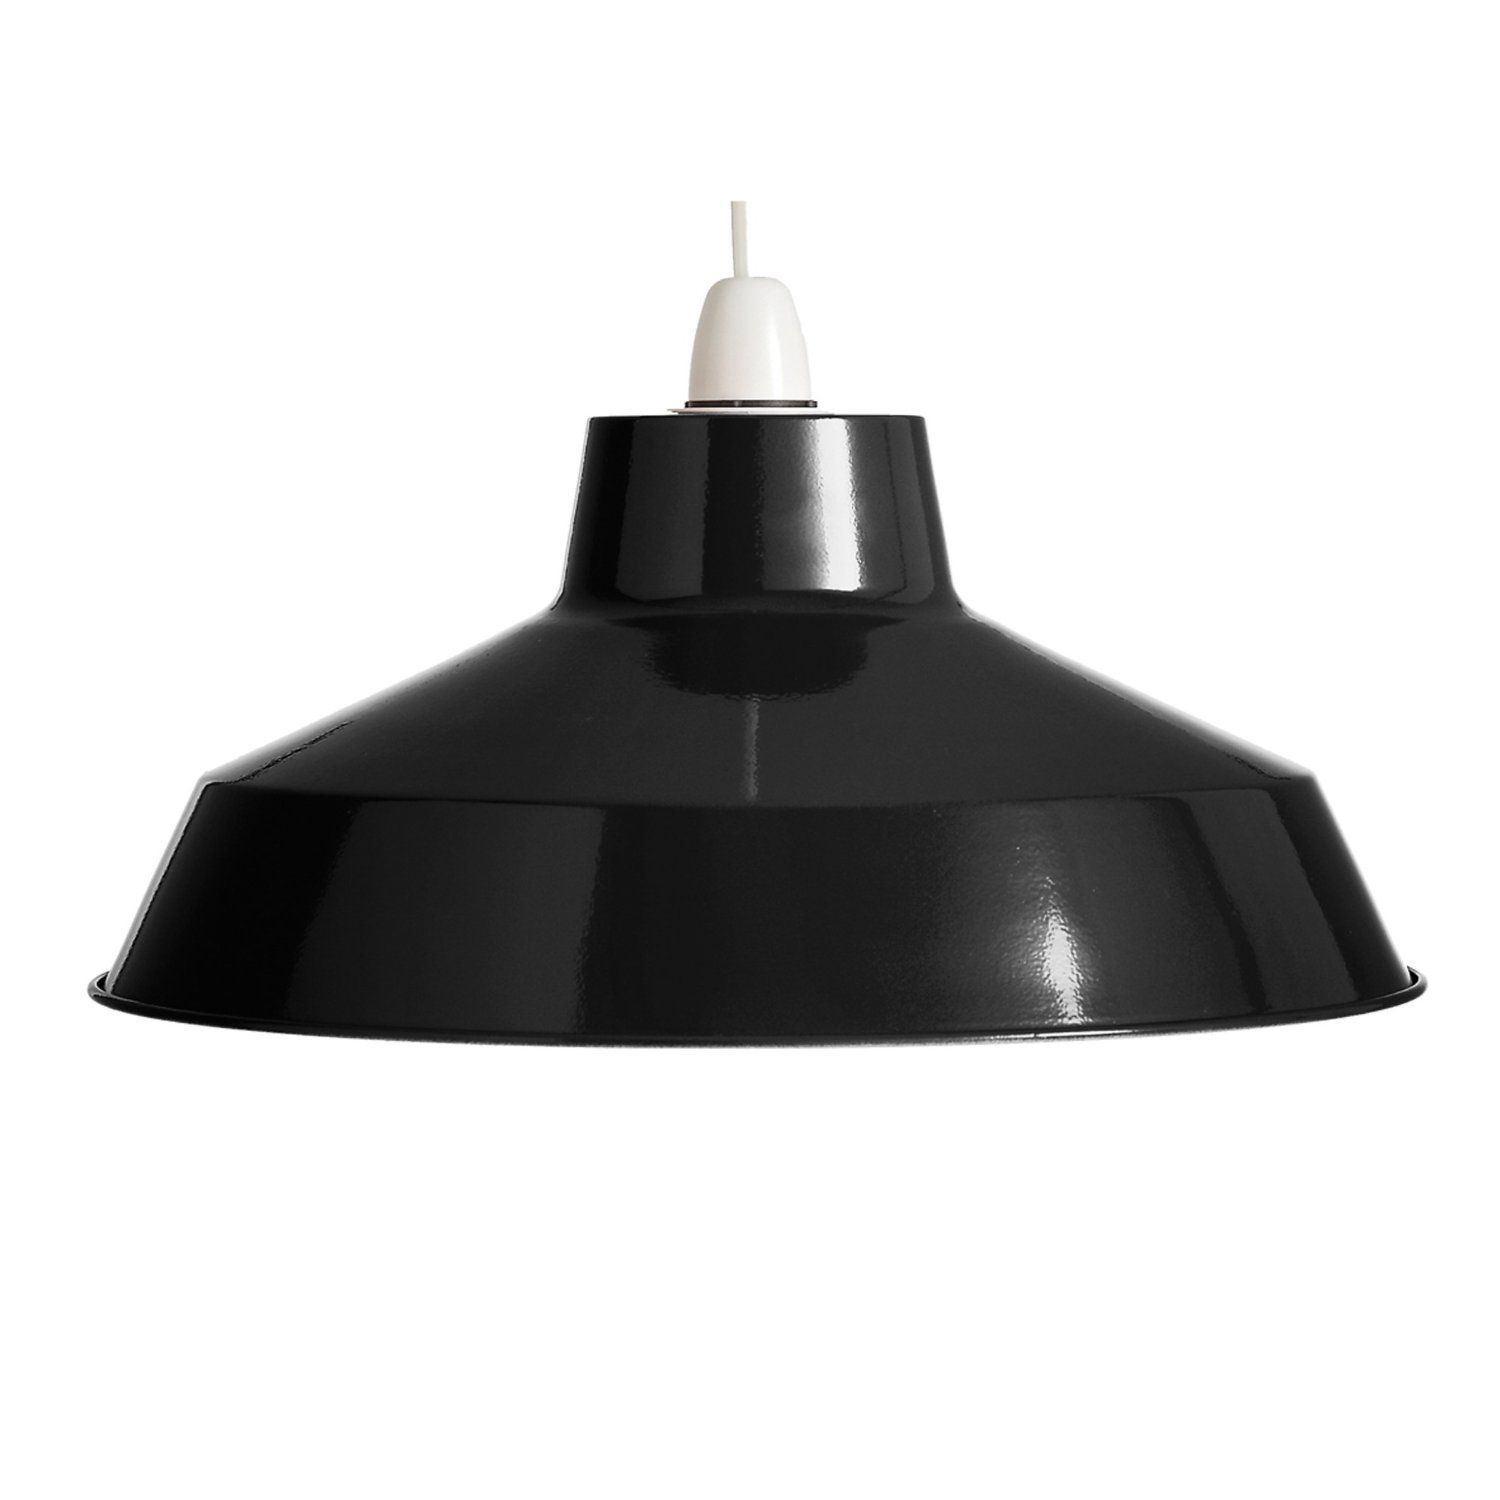 Sp390 Bk 35cm Classic Black Metal Pluto Ceiling Pendant Shade Amazon Co Uk Lighting Cont Metal Ceiling Lighting Contemporary Lamp Shades Modern Lamp Shades